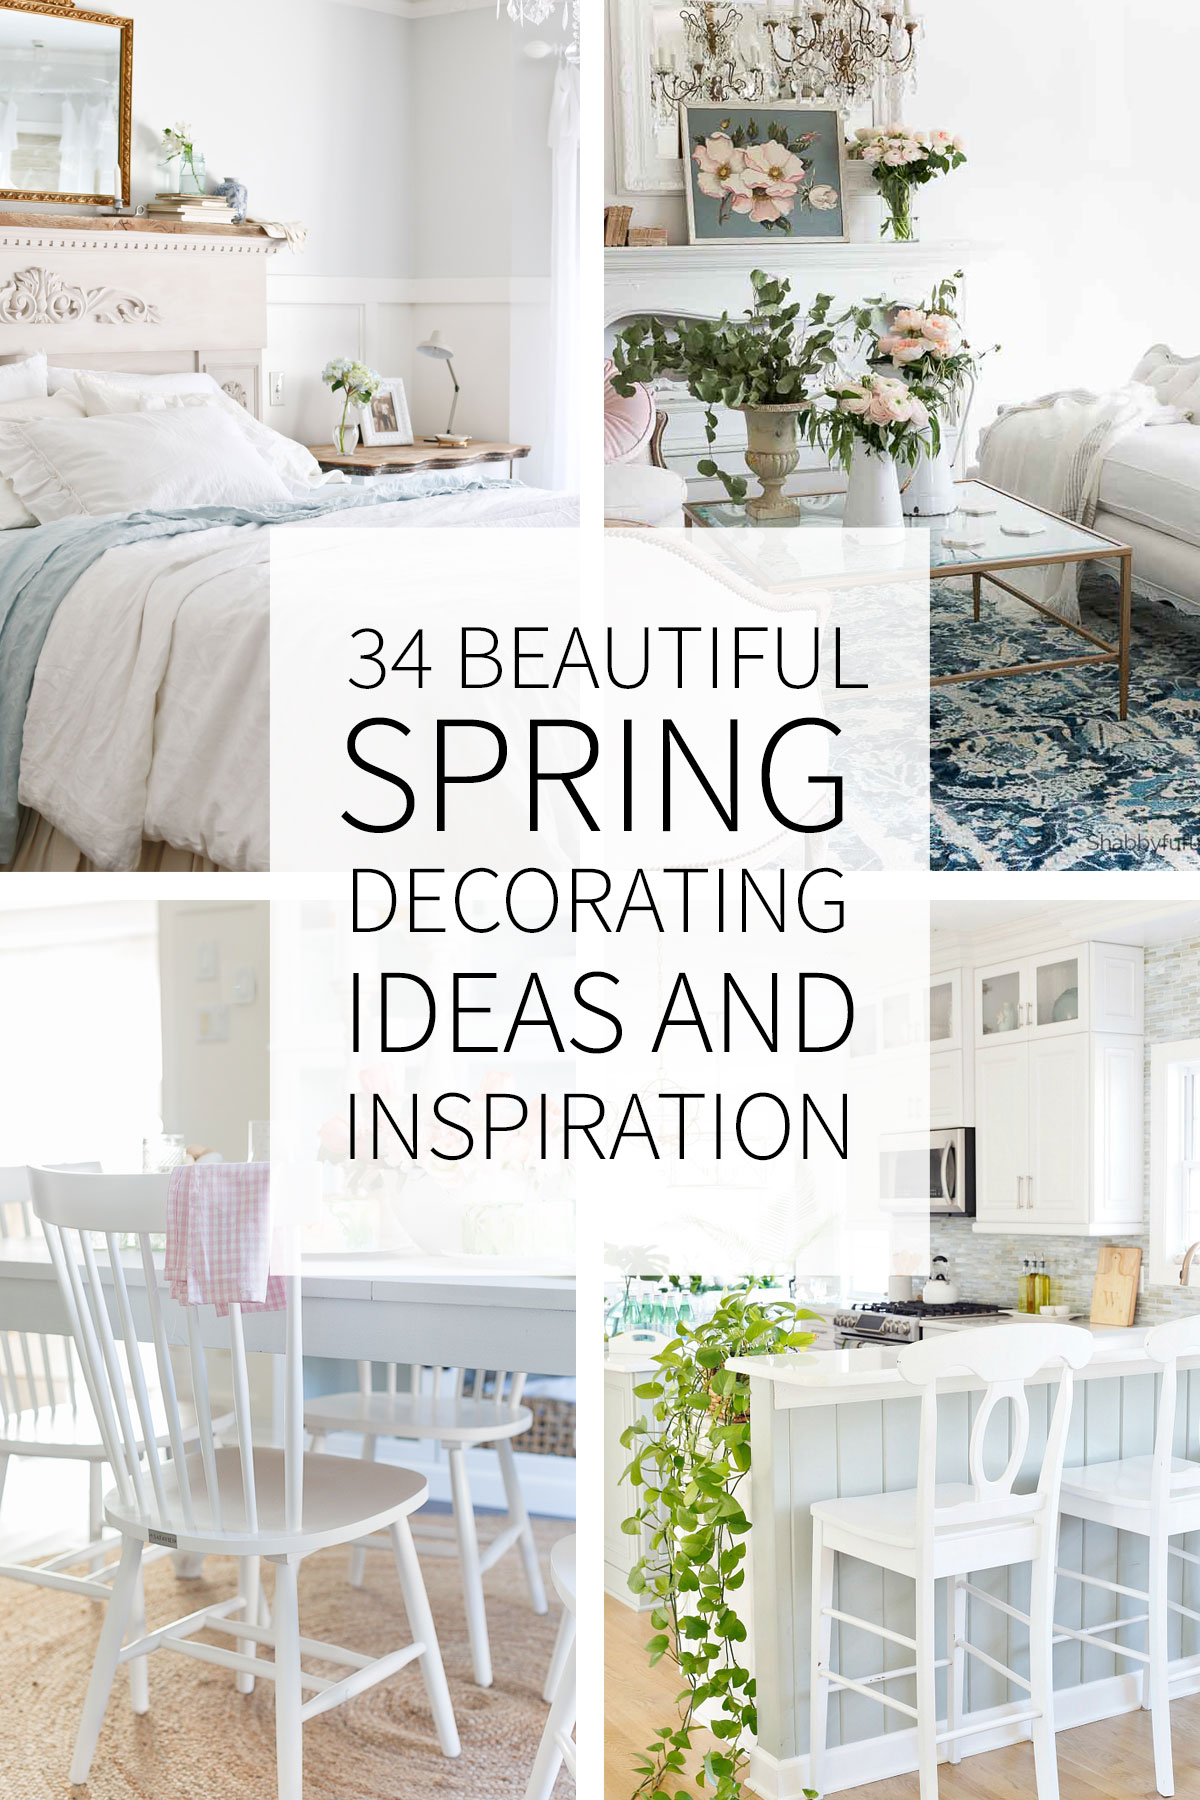 34 Beautiful Spring Decorating Ideas and Inspiration